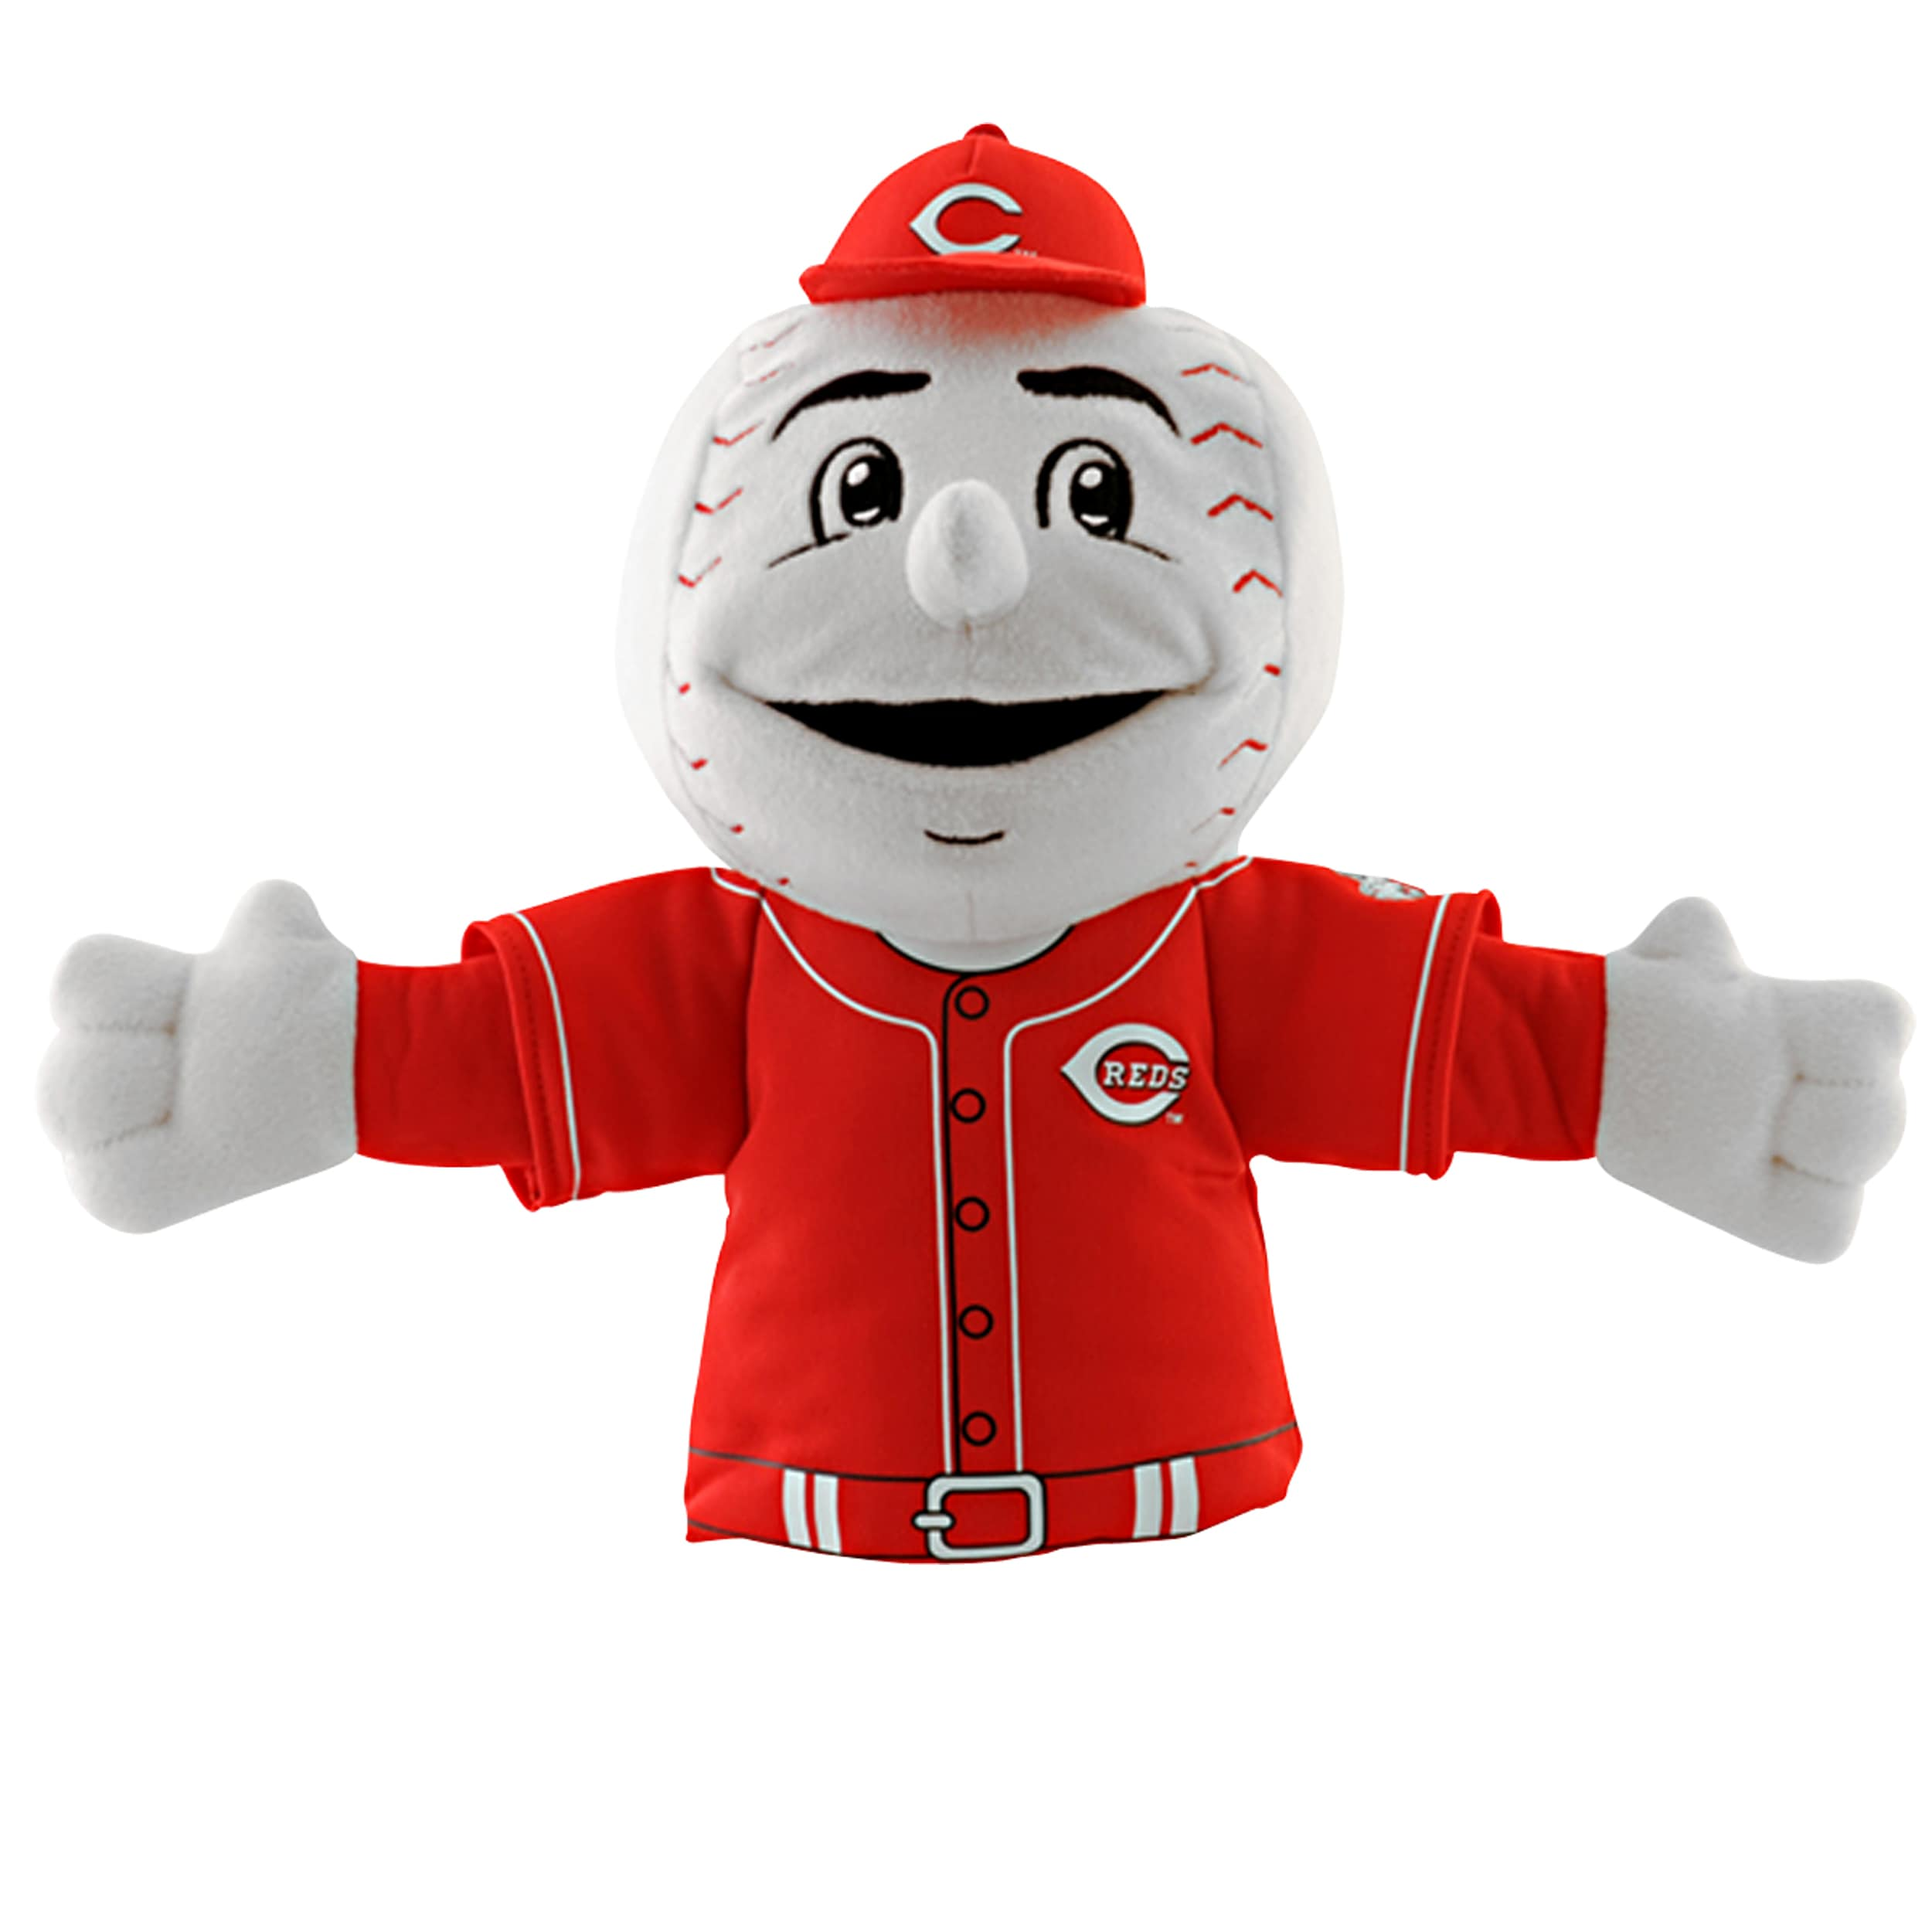 Cincinnati Reds 'Mr. Red' Mascot Hand Puppet